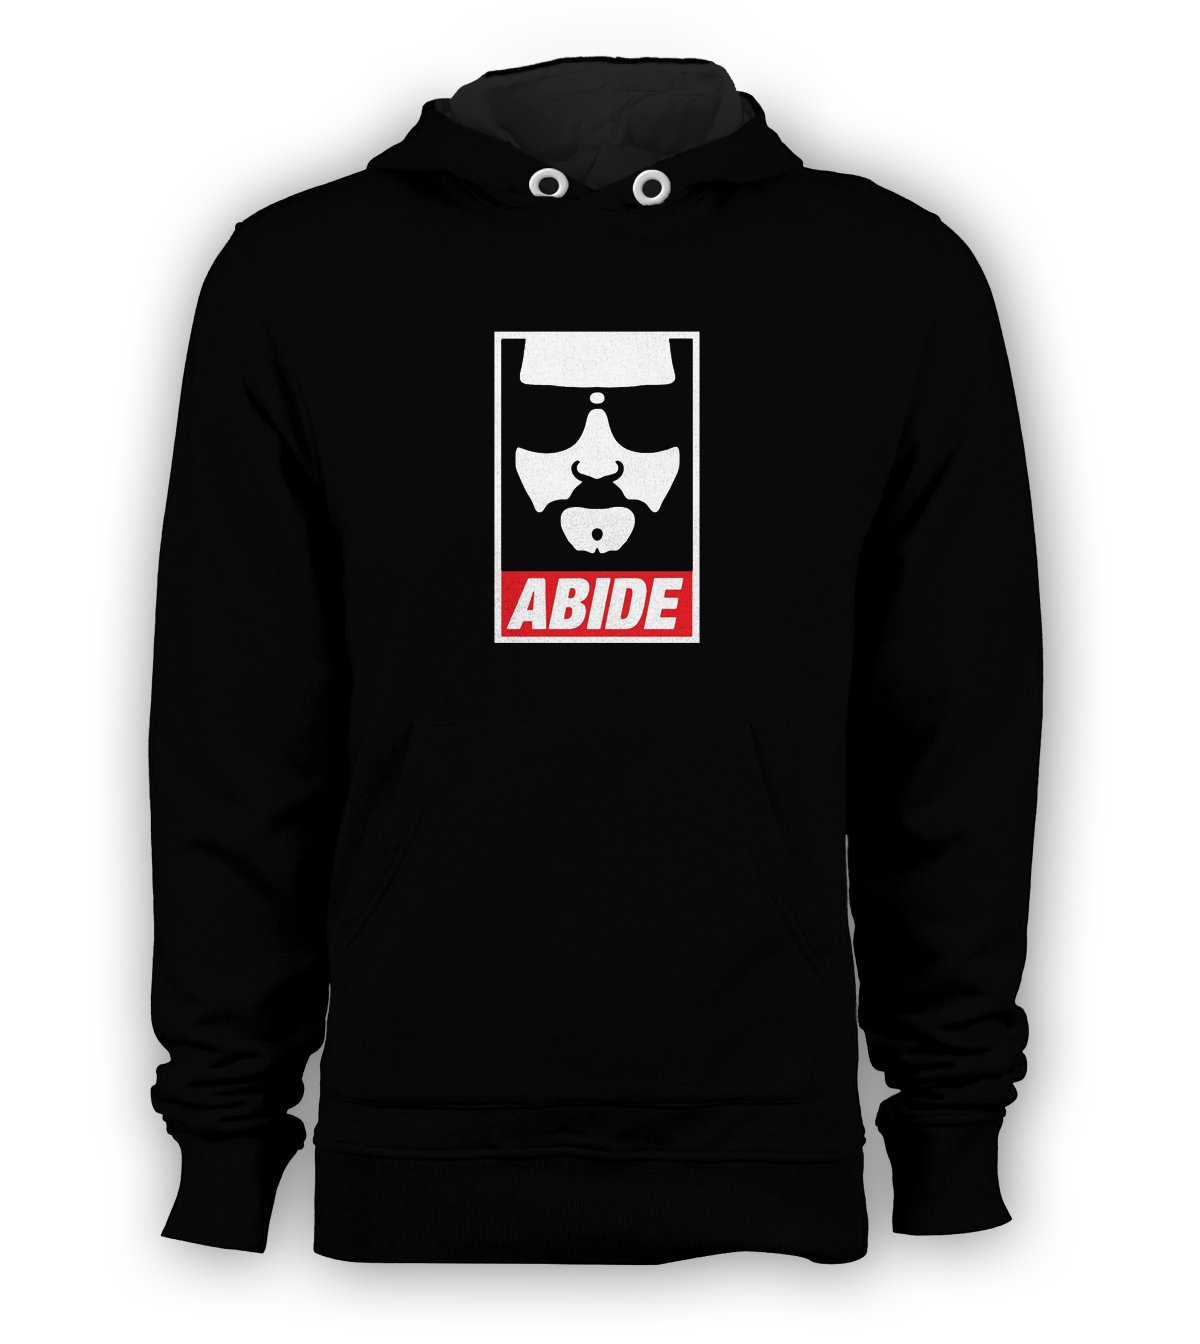 Abide Big Face Lebowski Pullover Hoodie Men Sweatshirts Size S to 3XL New Black